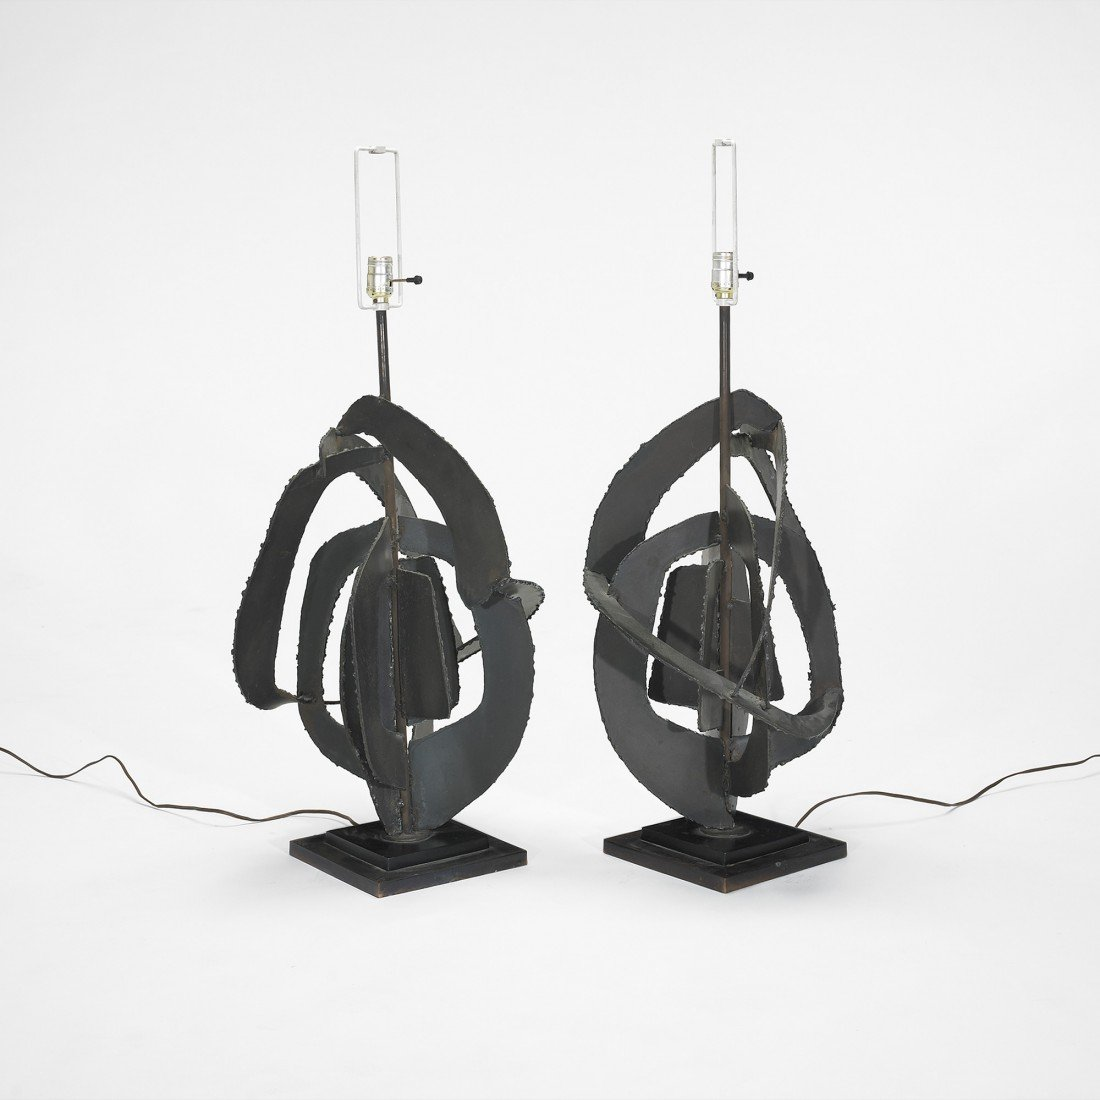 134: Harry Balmer table lamps, pair